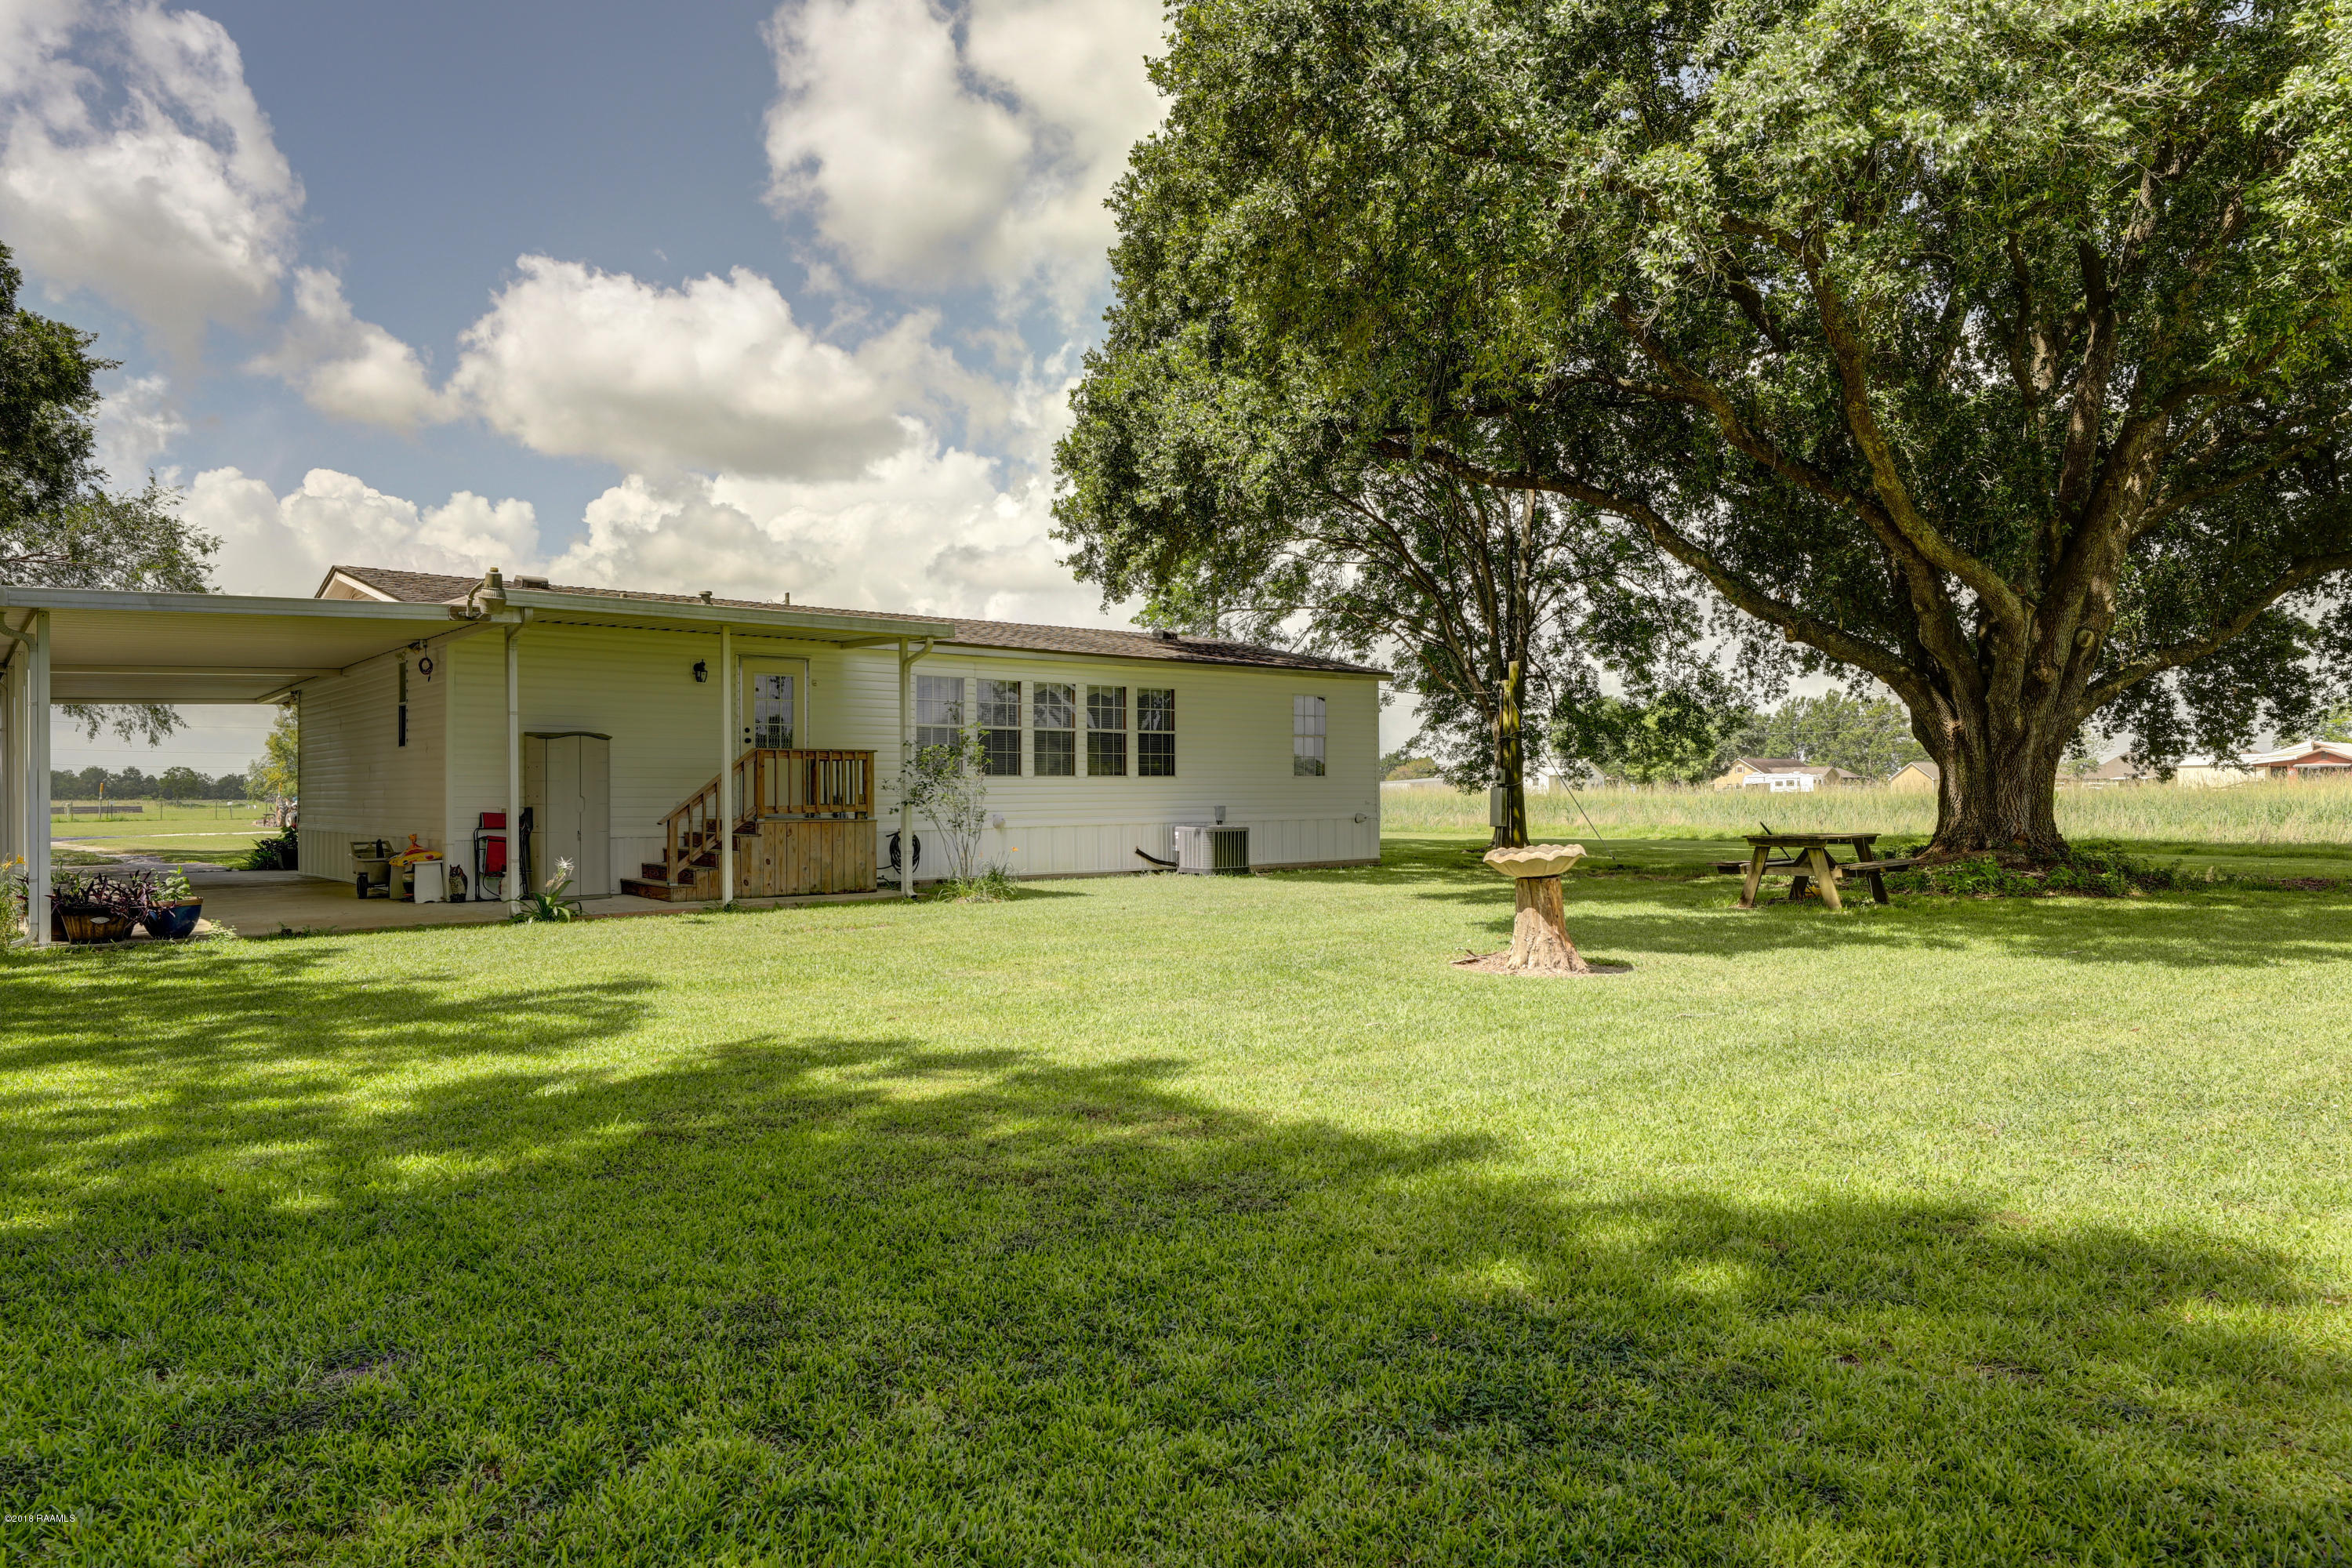 5060 Landry Road, Duson, LA 70529 Photo #14